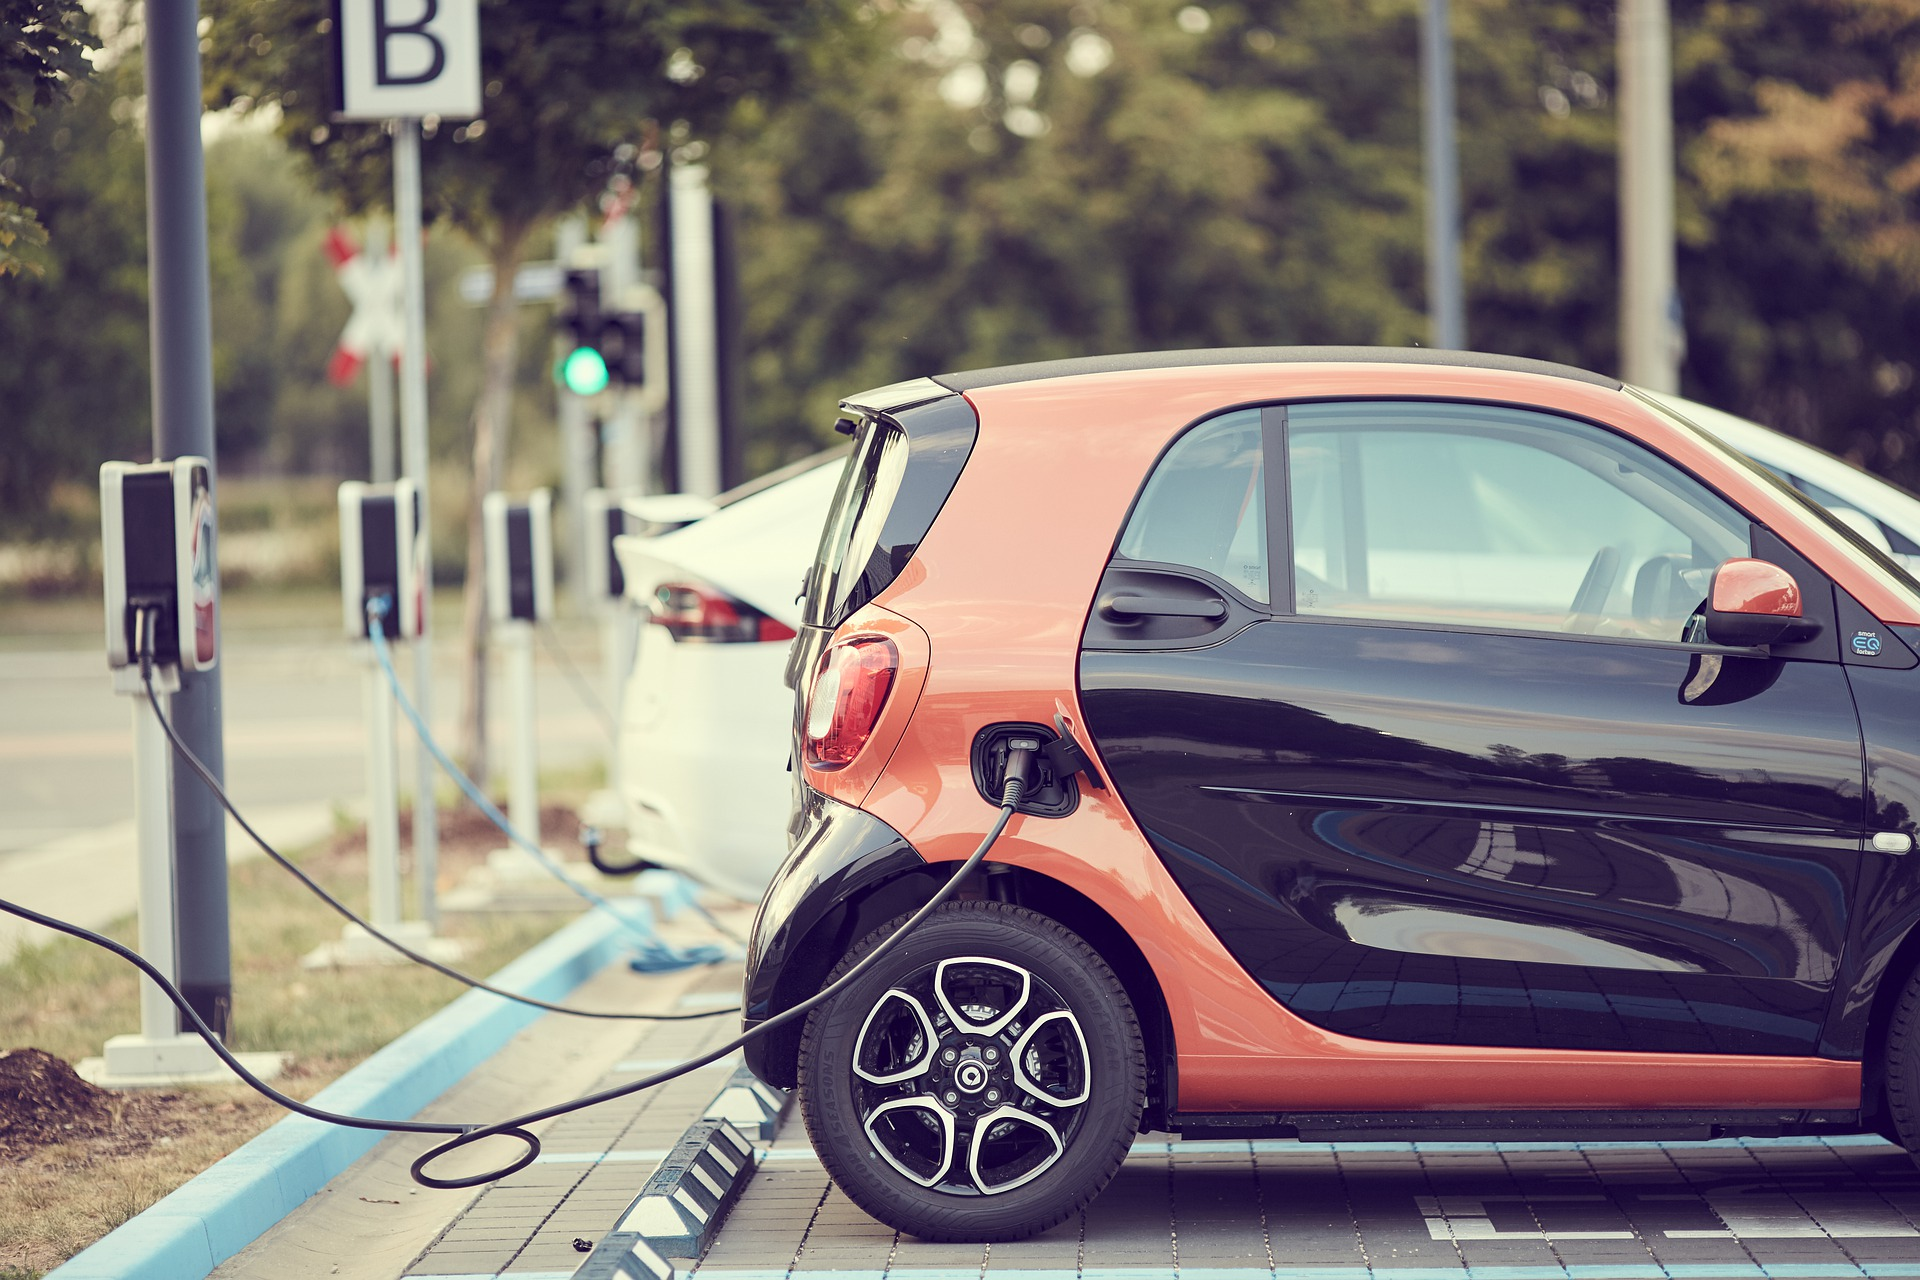 Installing The Electric Car Stations